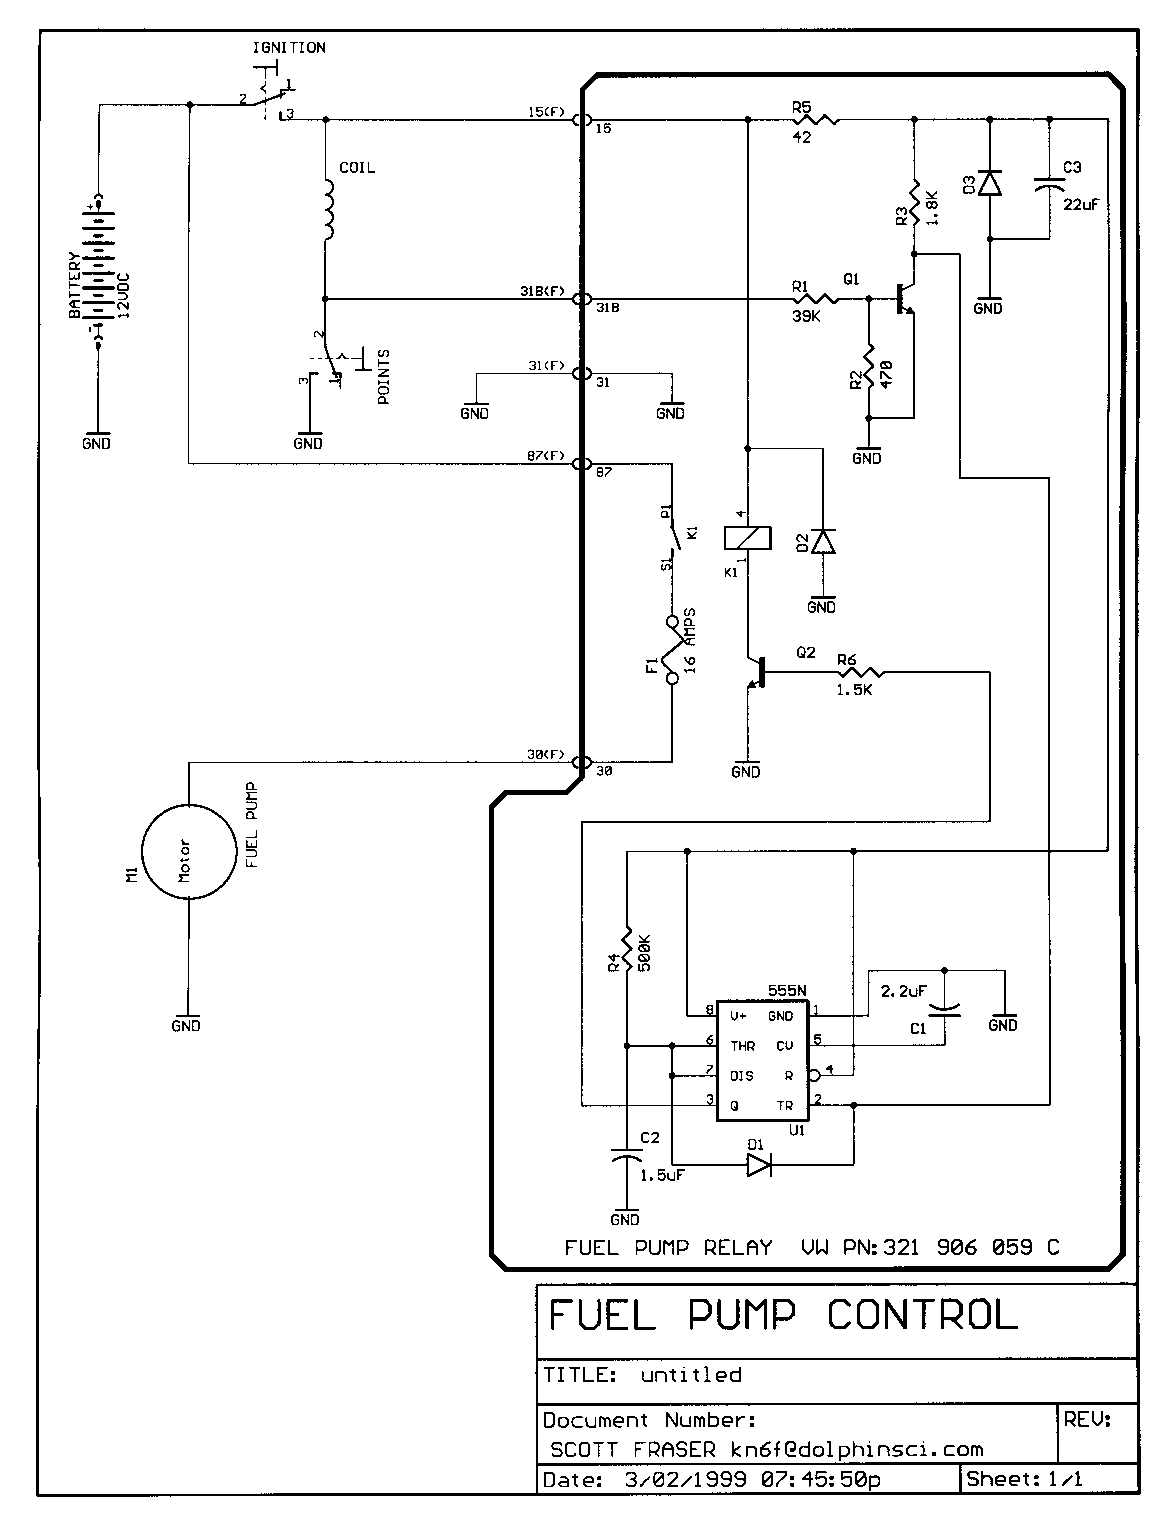 VWfuelPumpRelay thesamba com bay window bus view topic fuel pump wiring fuel pump circuit diagram at readyjetset.co